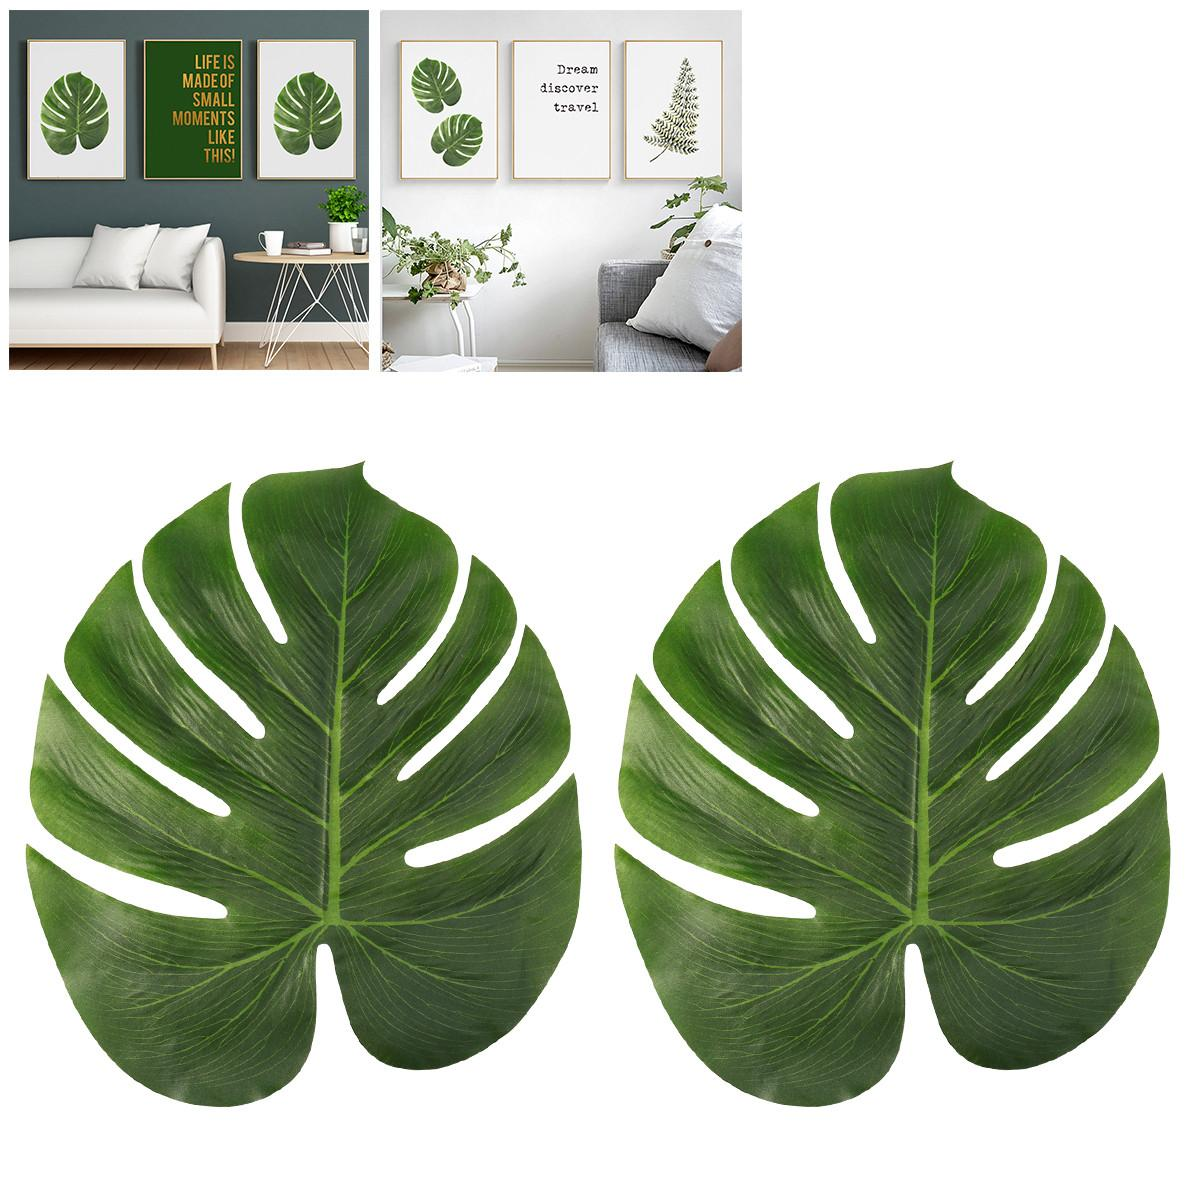 2018 35x29cm artificial plant turtle leaves artificial plants fake